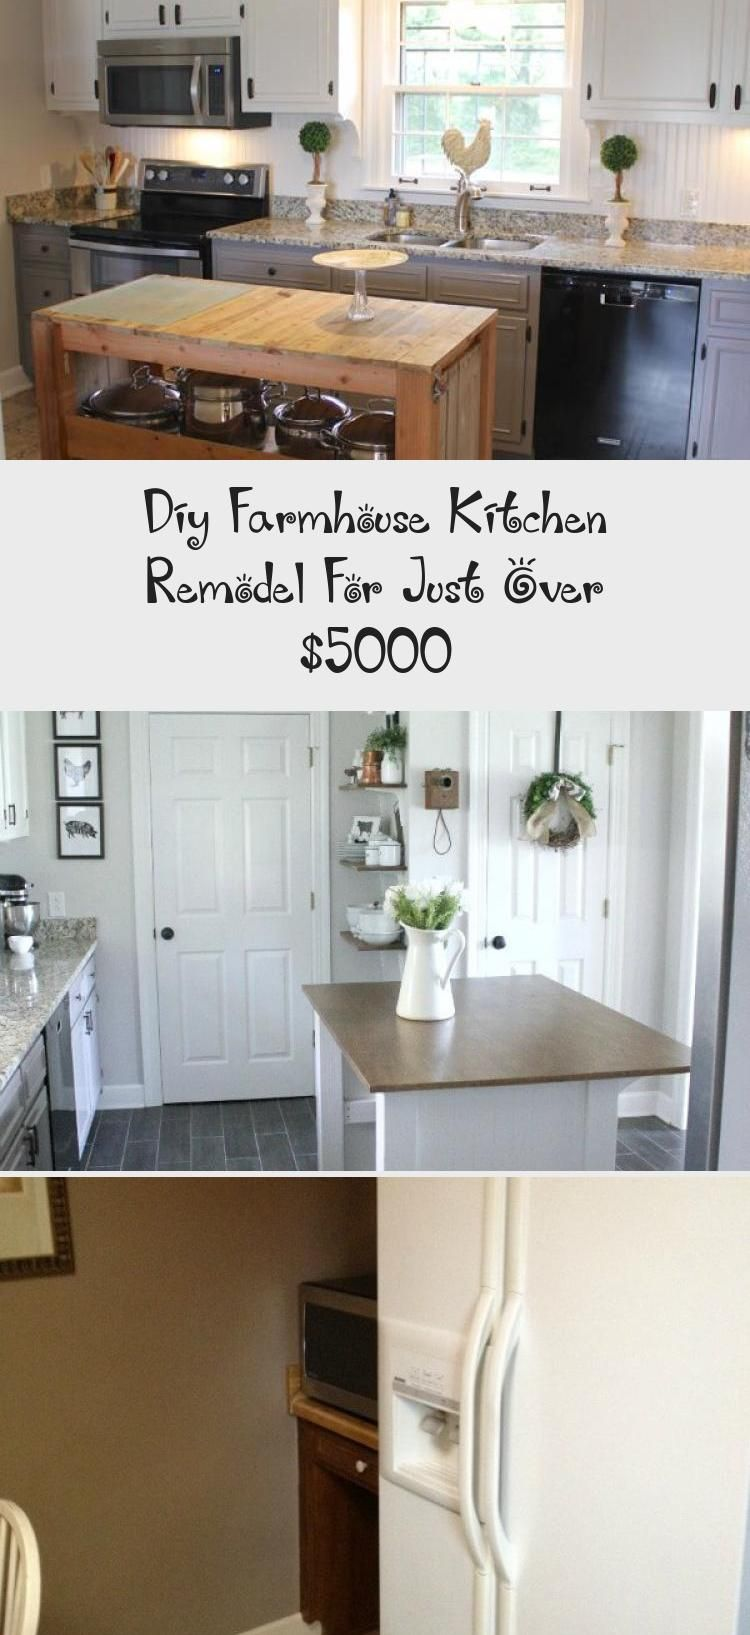 diy farmhouse kitchen remodel for just over 5000 kitchen decor in 2020 farmhouse kitchen on kitchen remodel under 5000 id=46750